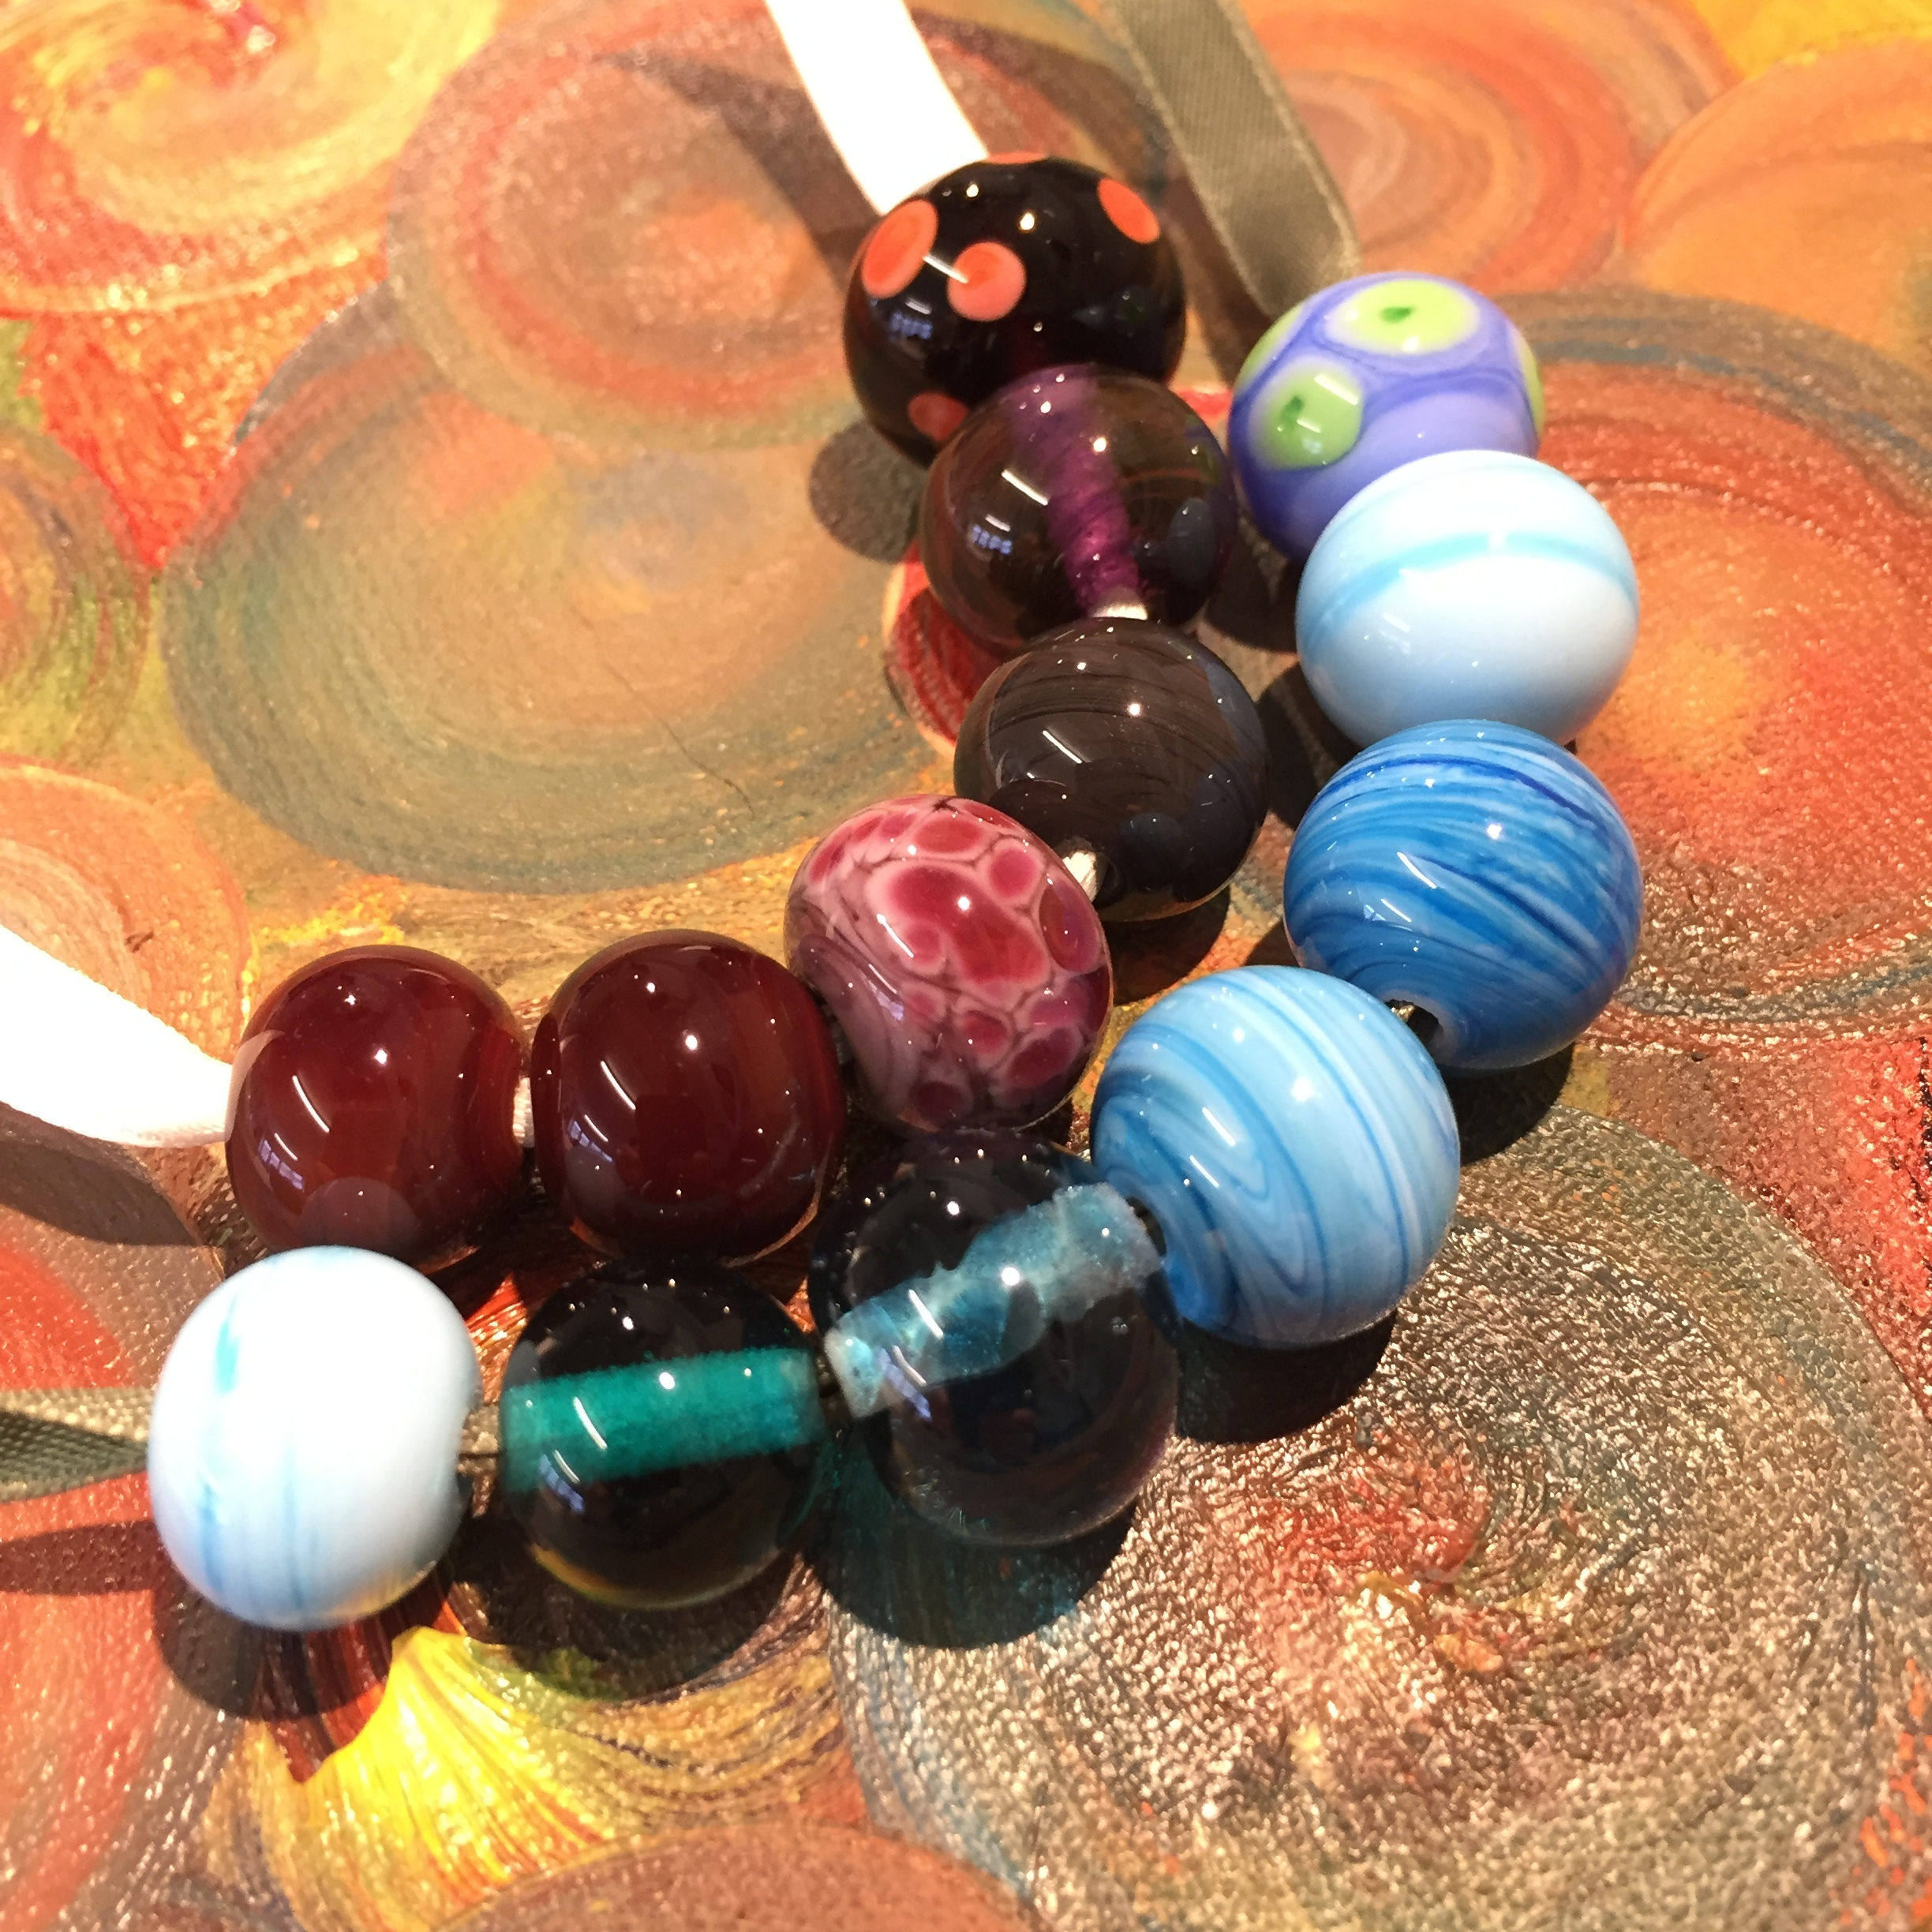 Both ladies created gorgeous beads! Charlie went for sea colours, and designs included frit, dots and gravity-twisting.